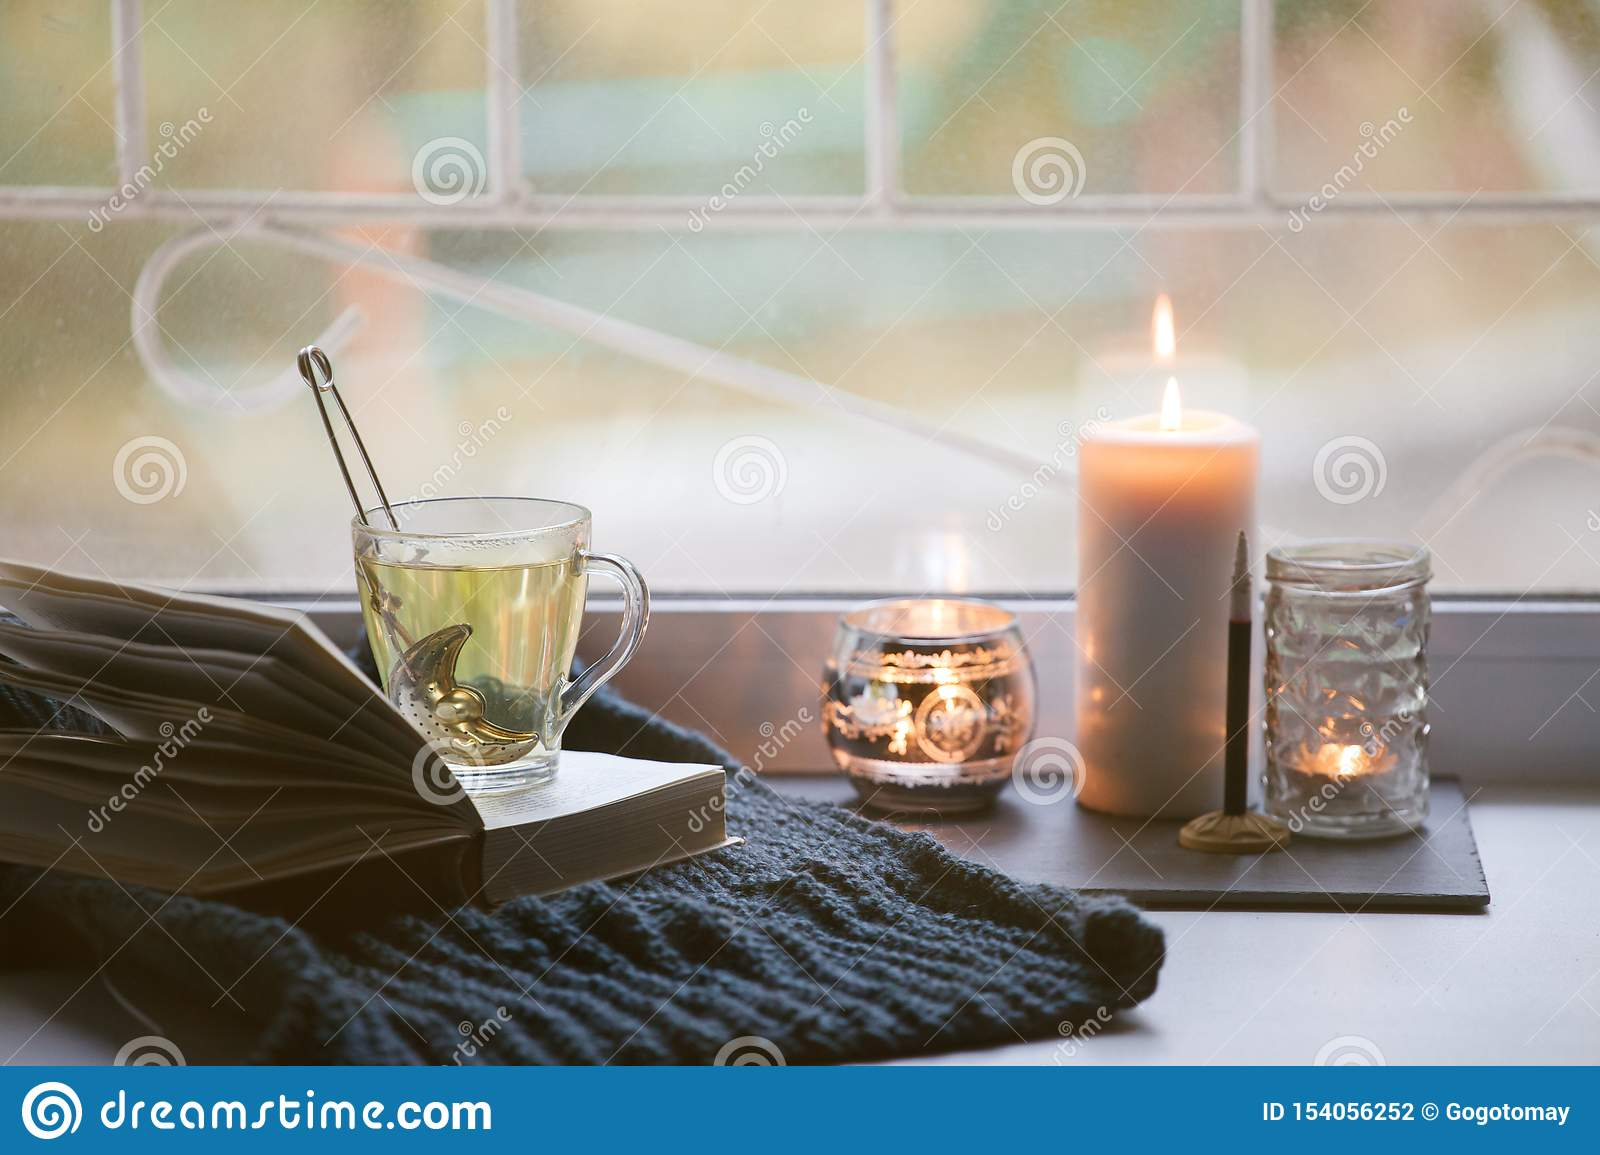 Concept Of Autumn Reading Time And Romantic Hygge Unplug